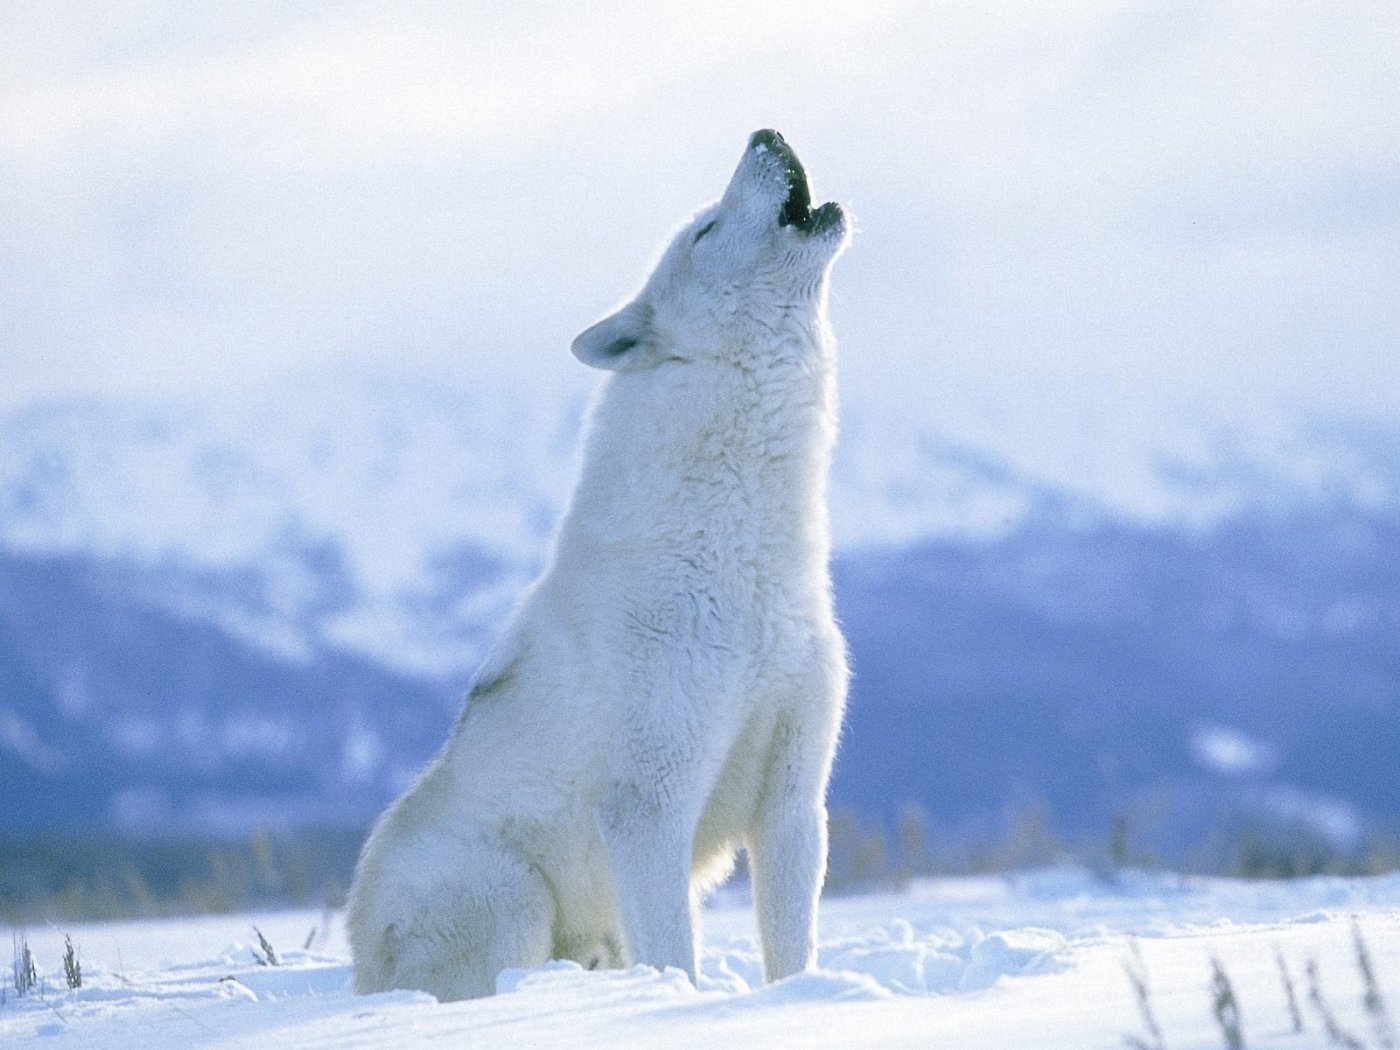 http://wfiles.brothersoft.com/a/arctic-wolf-wallpaper_100709-1400x1050.jpg